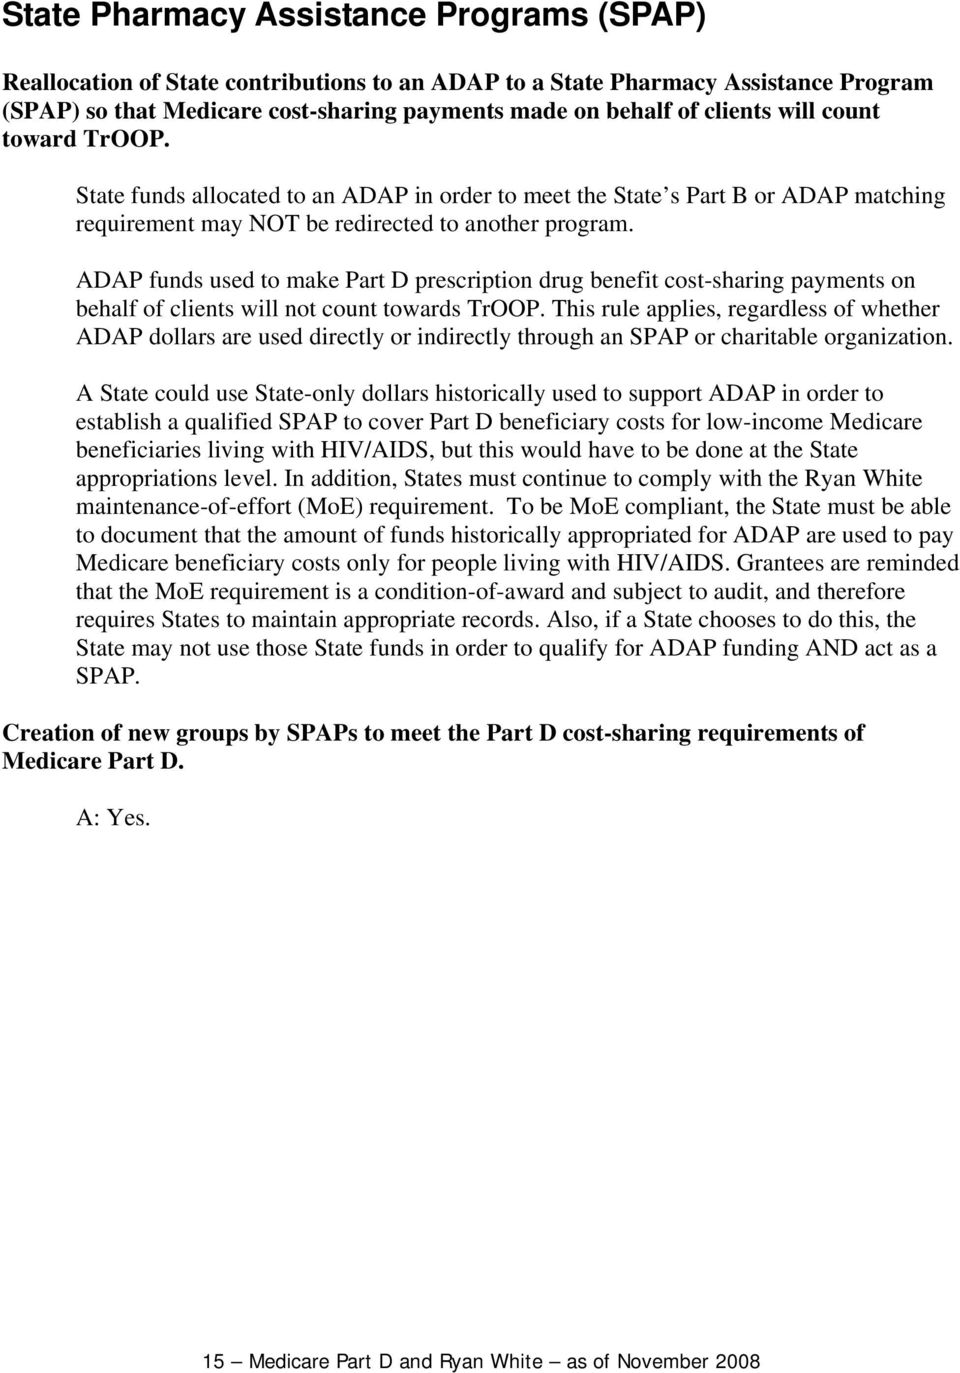 ADAP funds used to make Part D prescription drug benefit cost-sharing payments on behalf of clients will not count towards TrOOP.